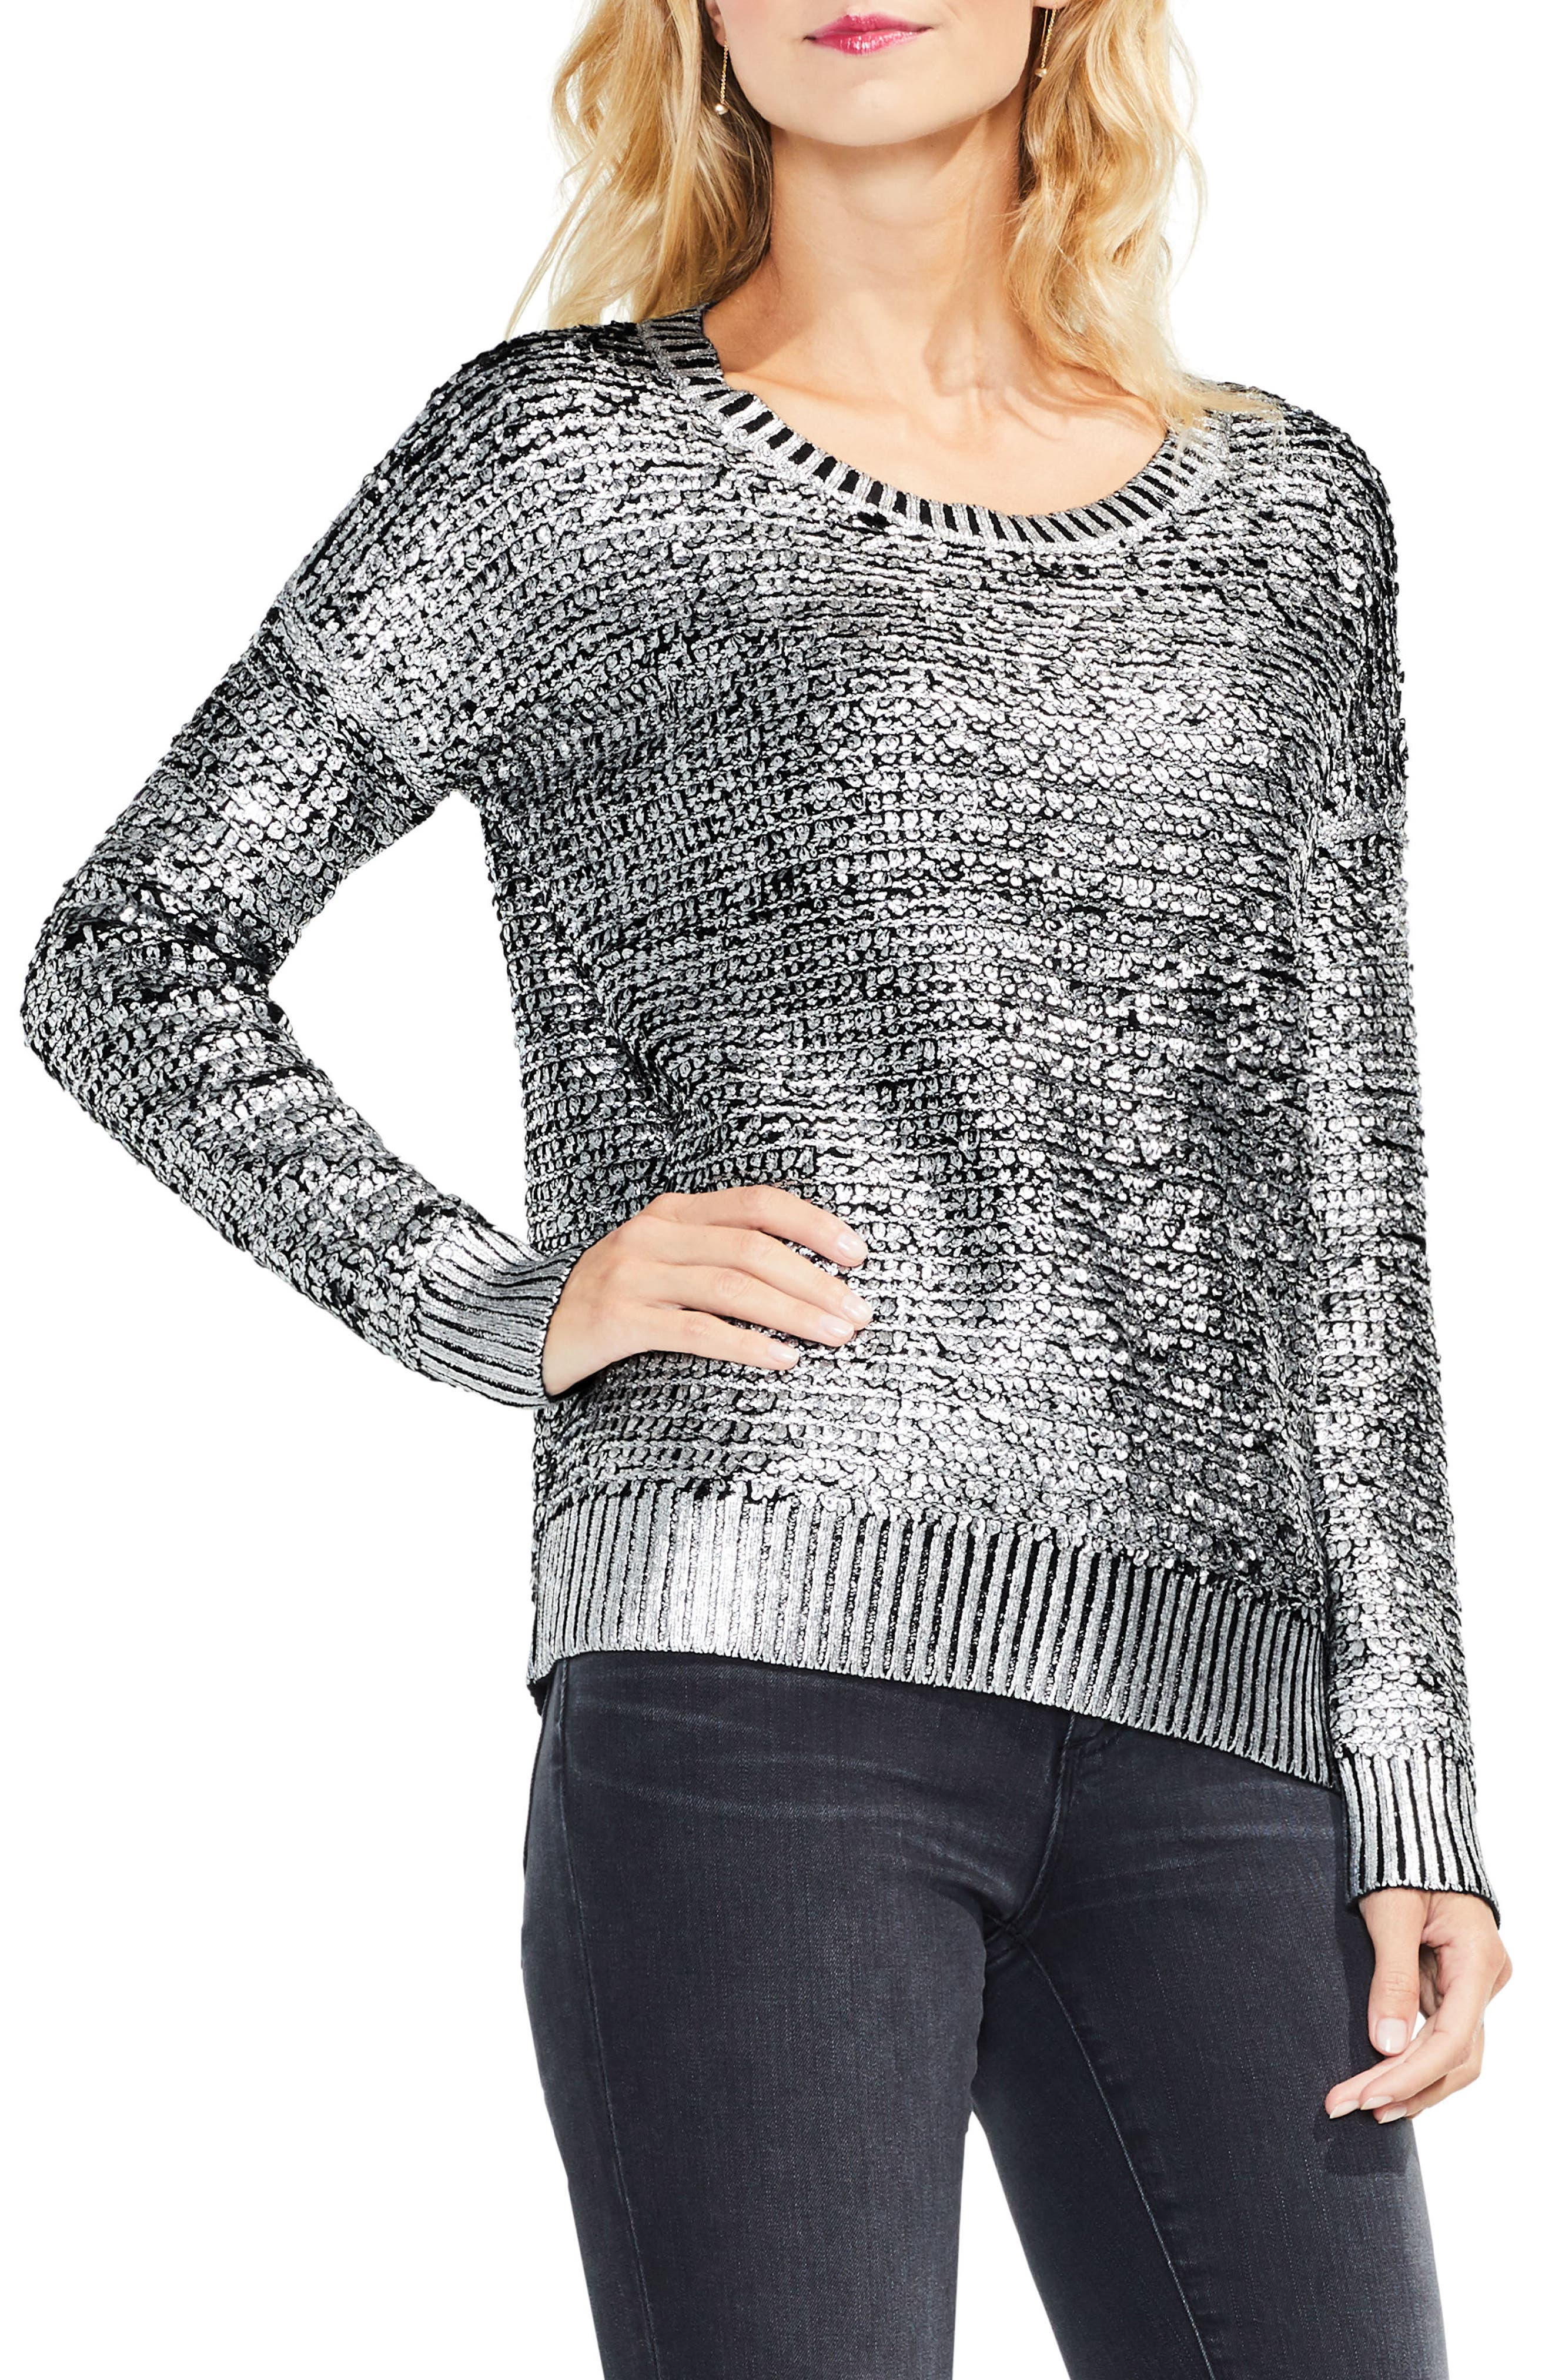 Loop Stitch Foil Print Sweater,                             Main thumbnail 1, color,                             006